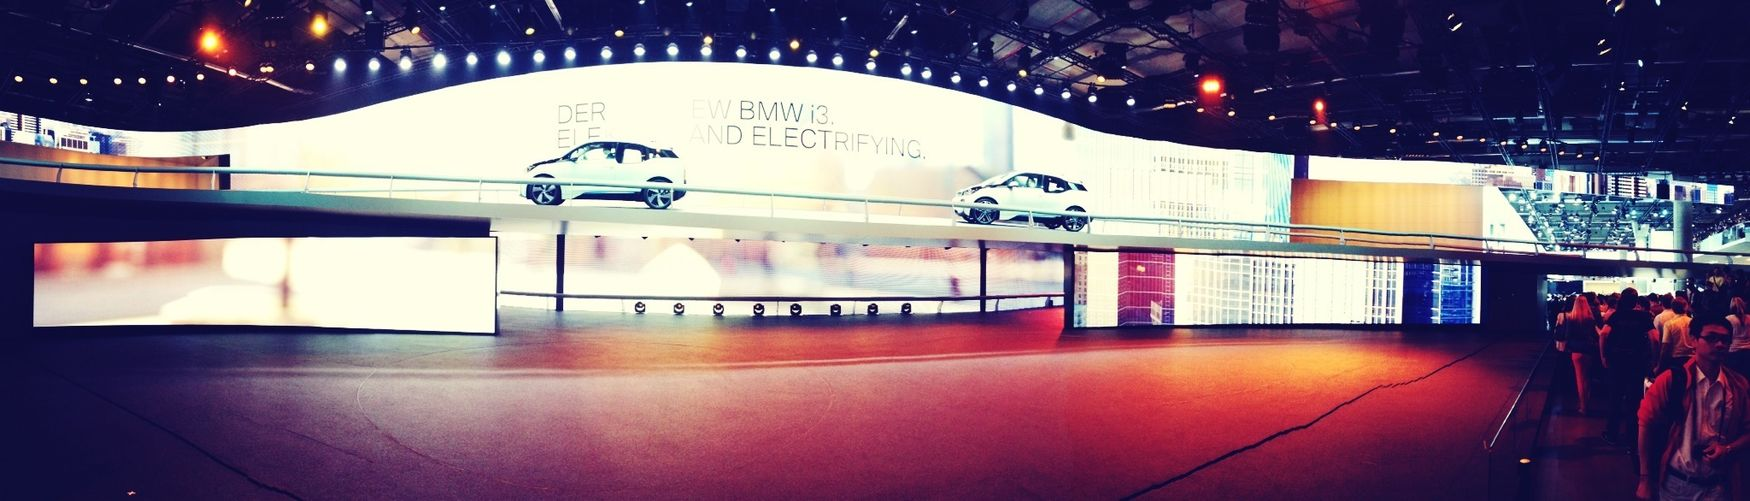 Bmw Great Show Huge Screen Good Fun